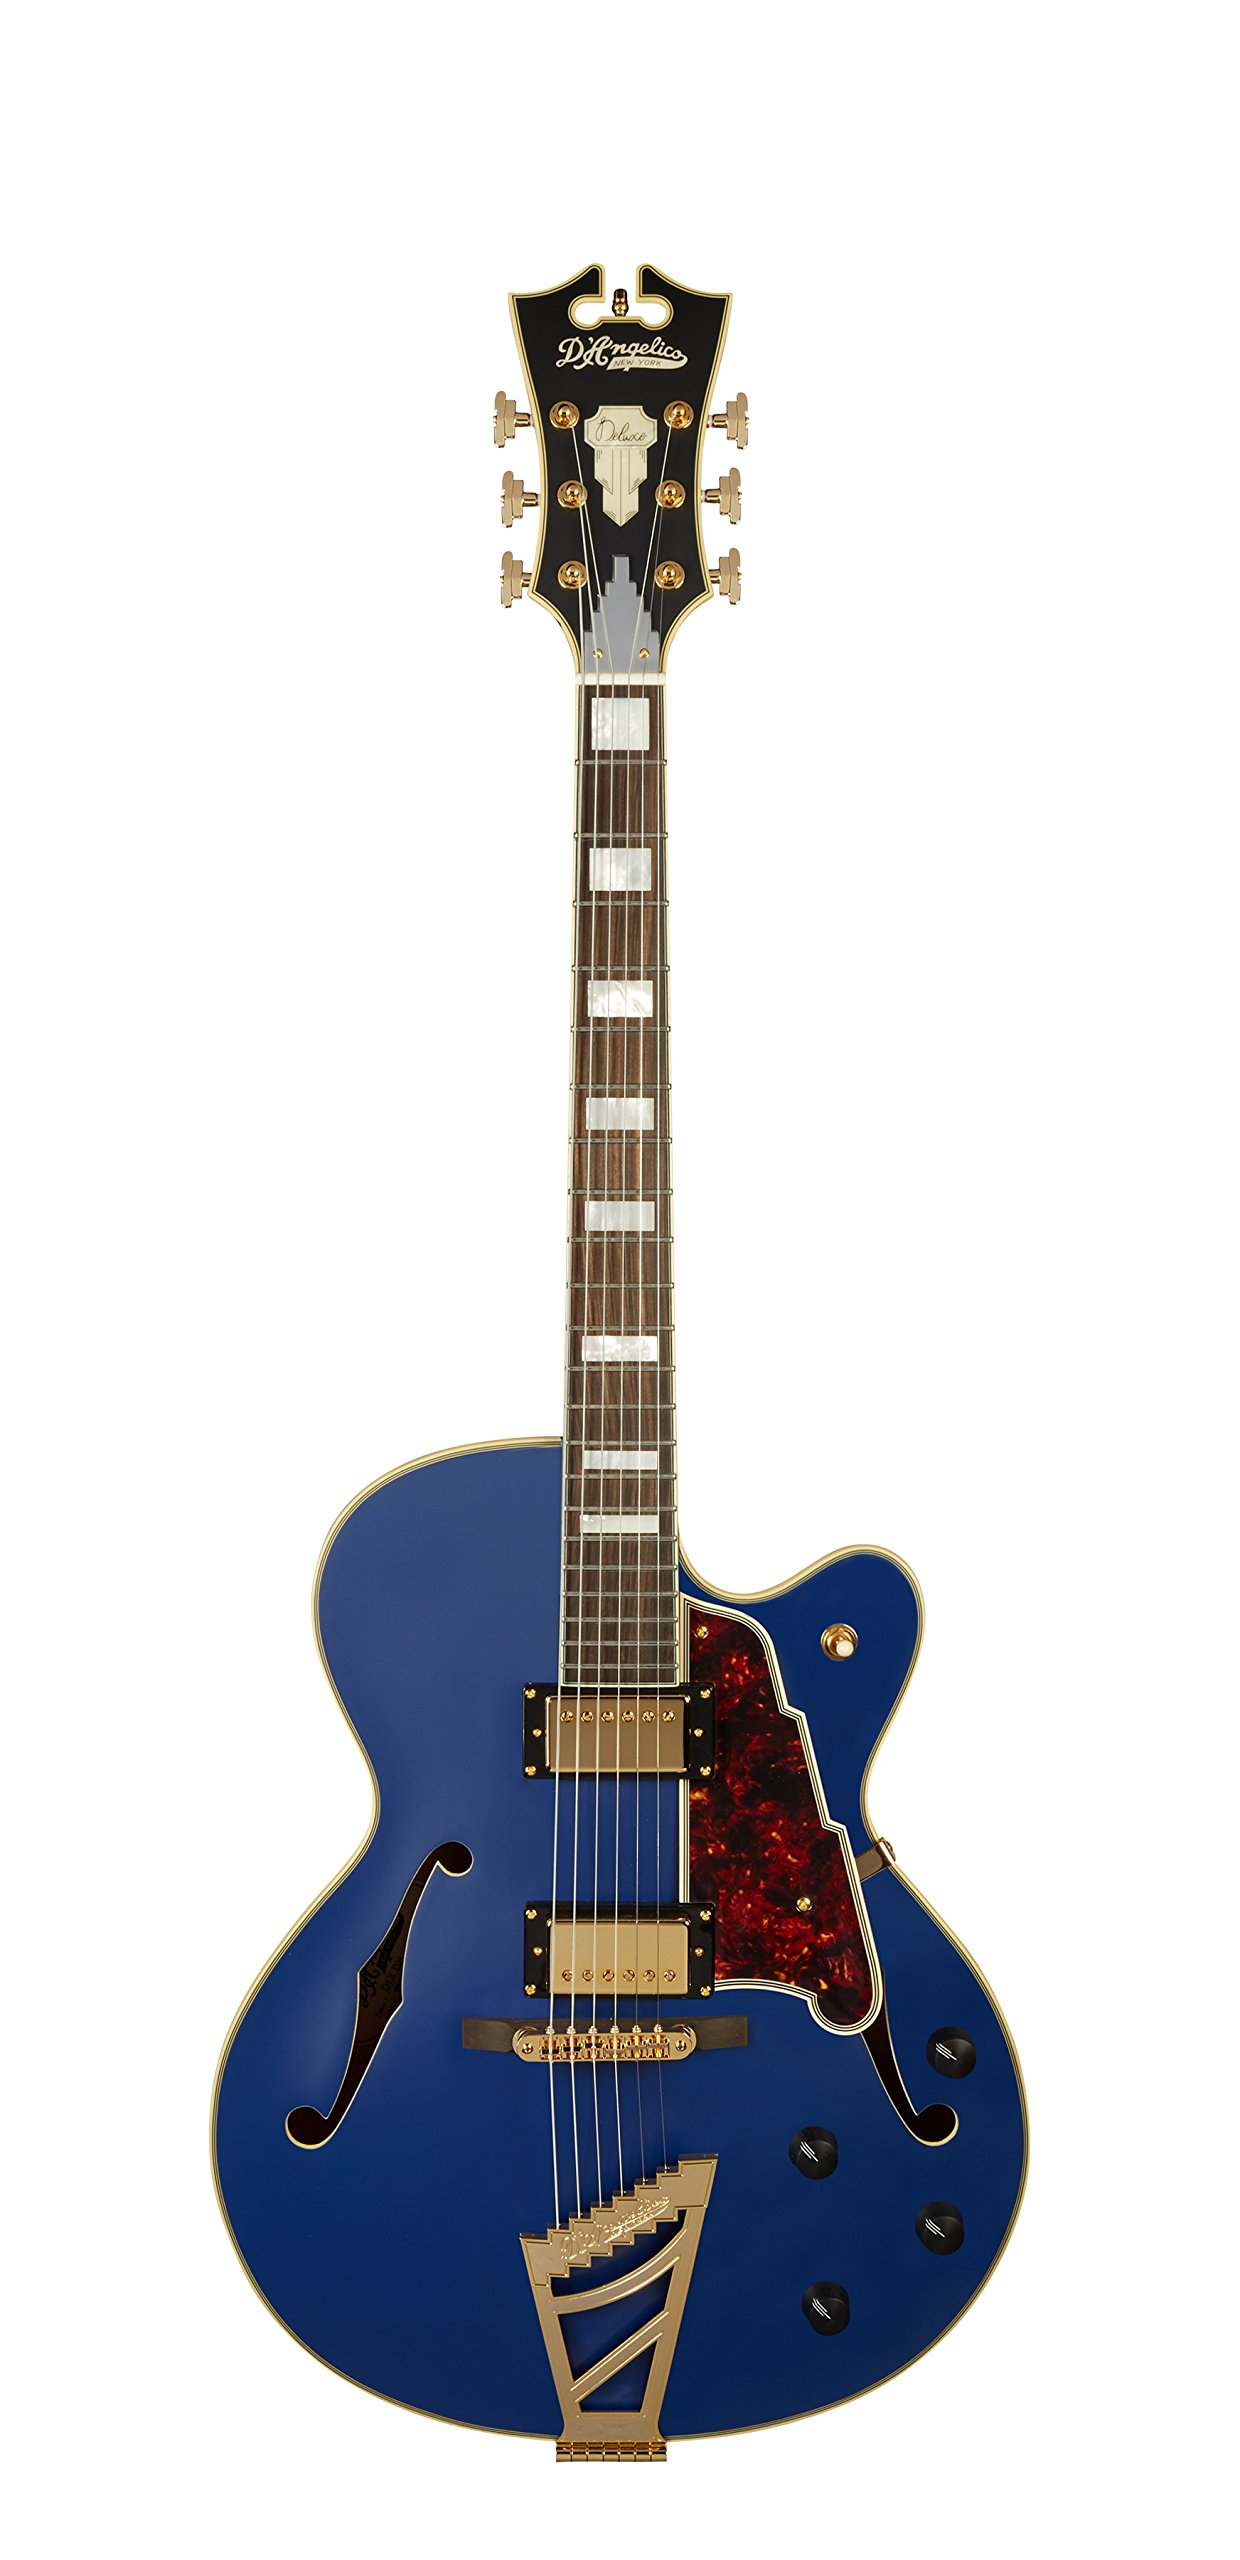 Cheap D Angelico Deluxe DH Hollow-Body Electric Guitar - Matte Royal Blue Black Friday & Cyber Monday 2019